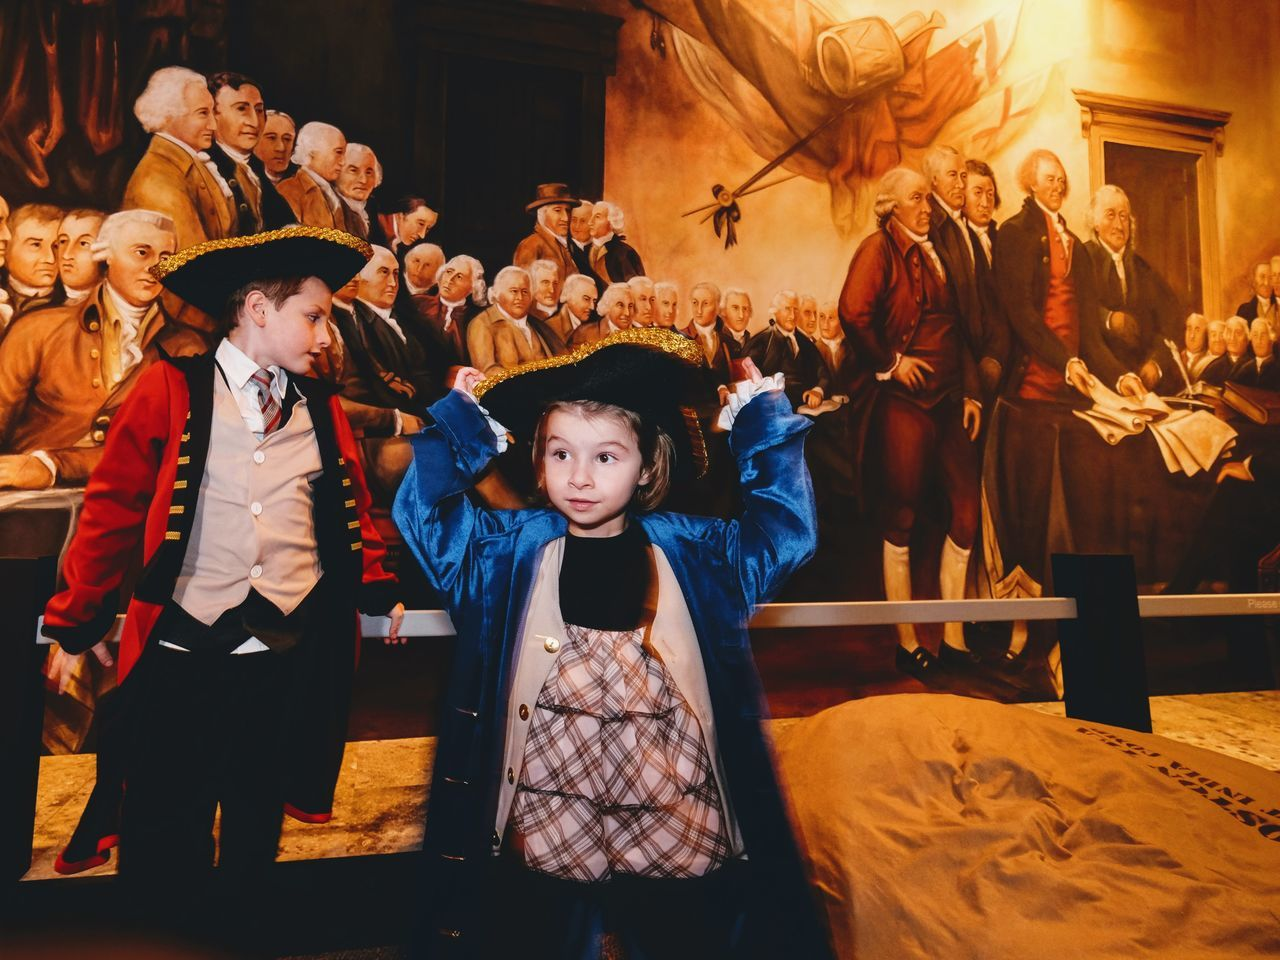 Beautiful stock photos of vatertag, child, girls, boys, period costume